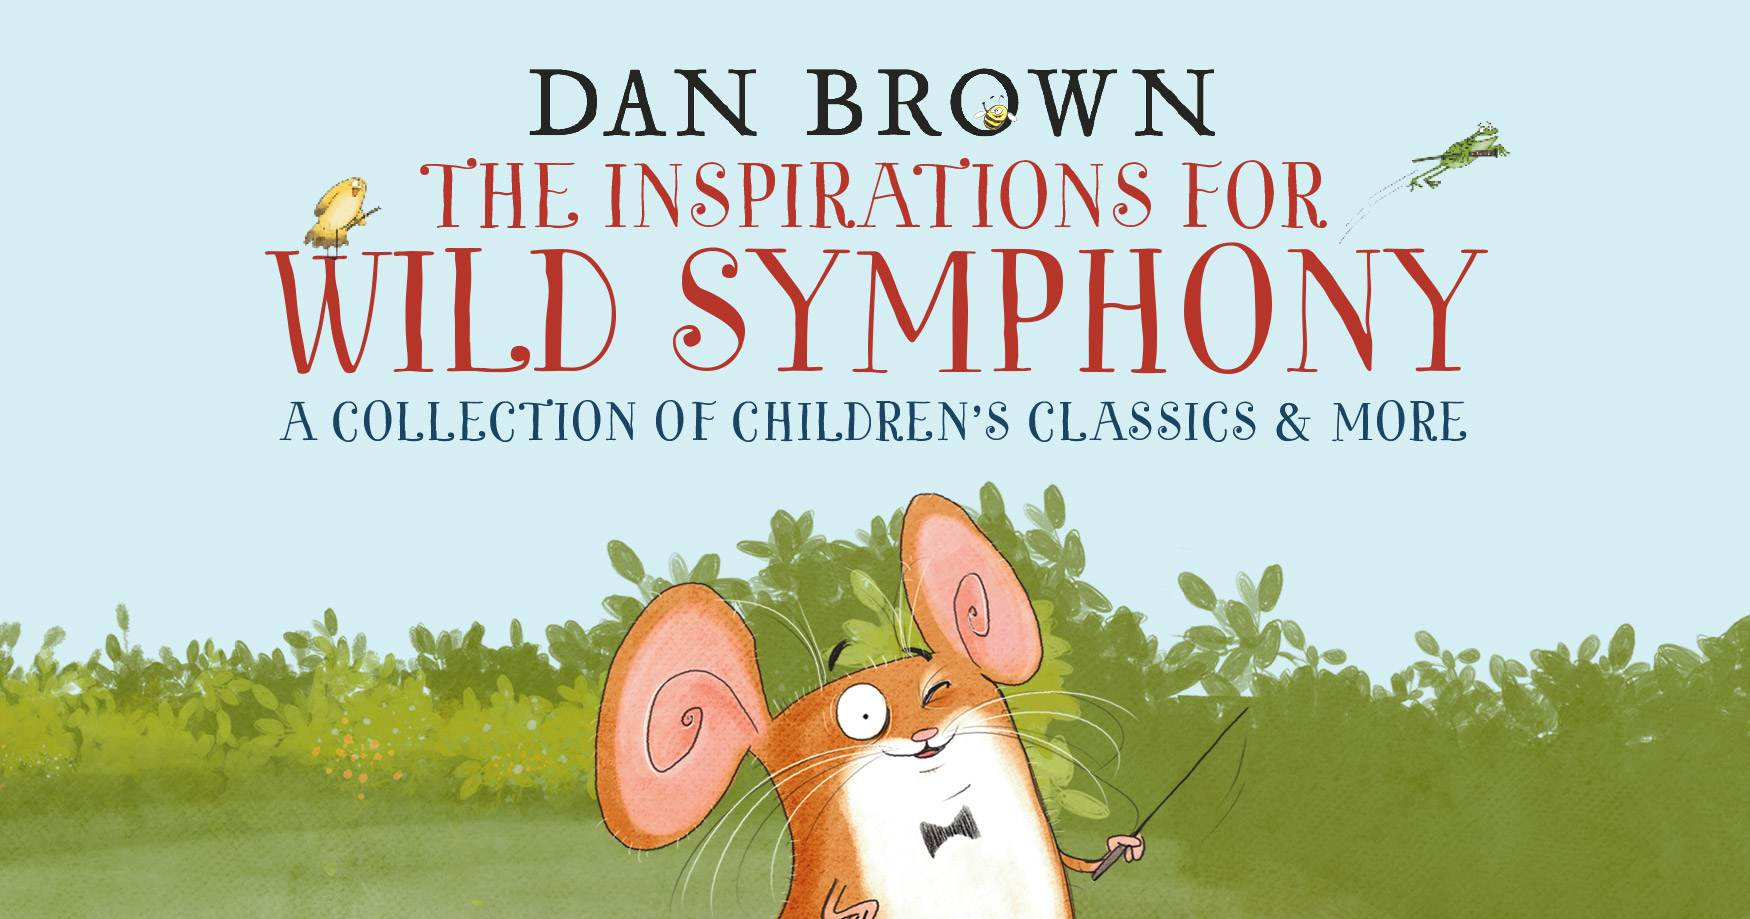 The Inspirations for Wild Symphony - A collection of children's classics & more